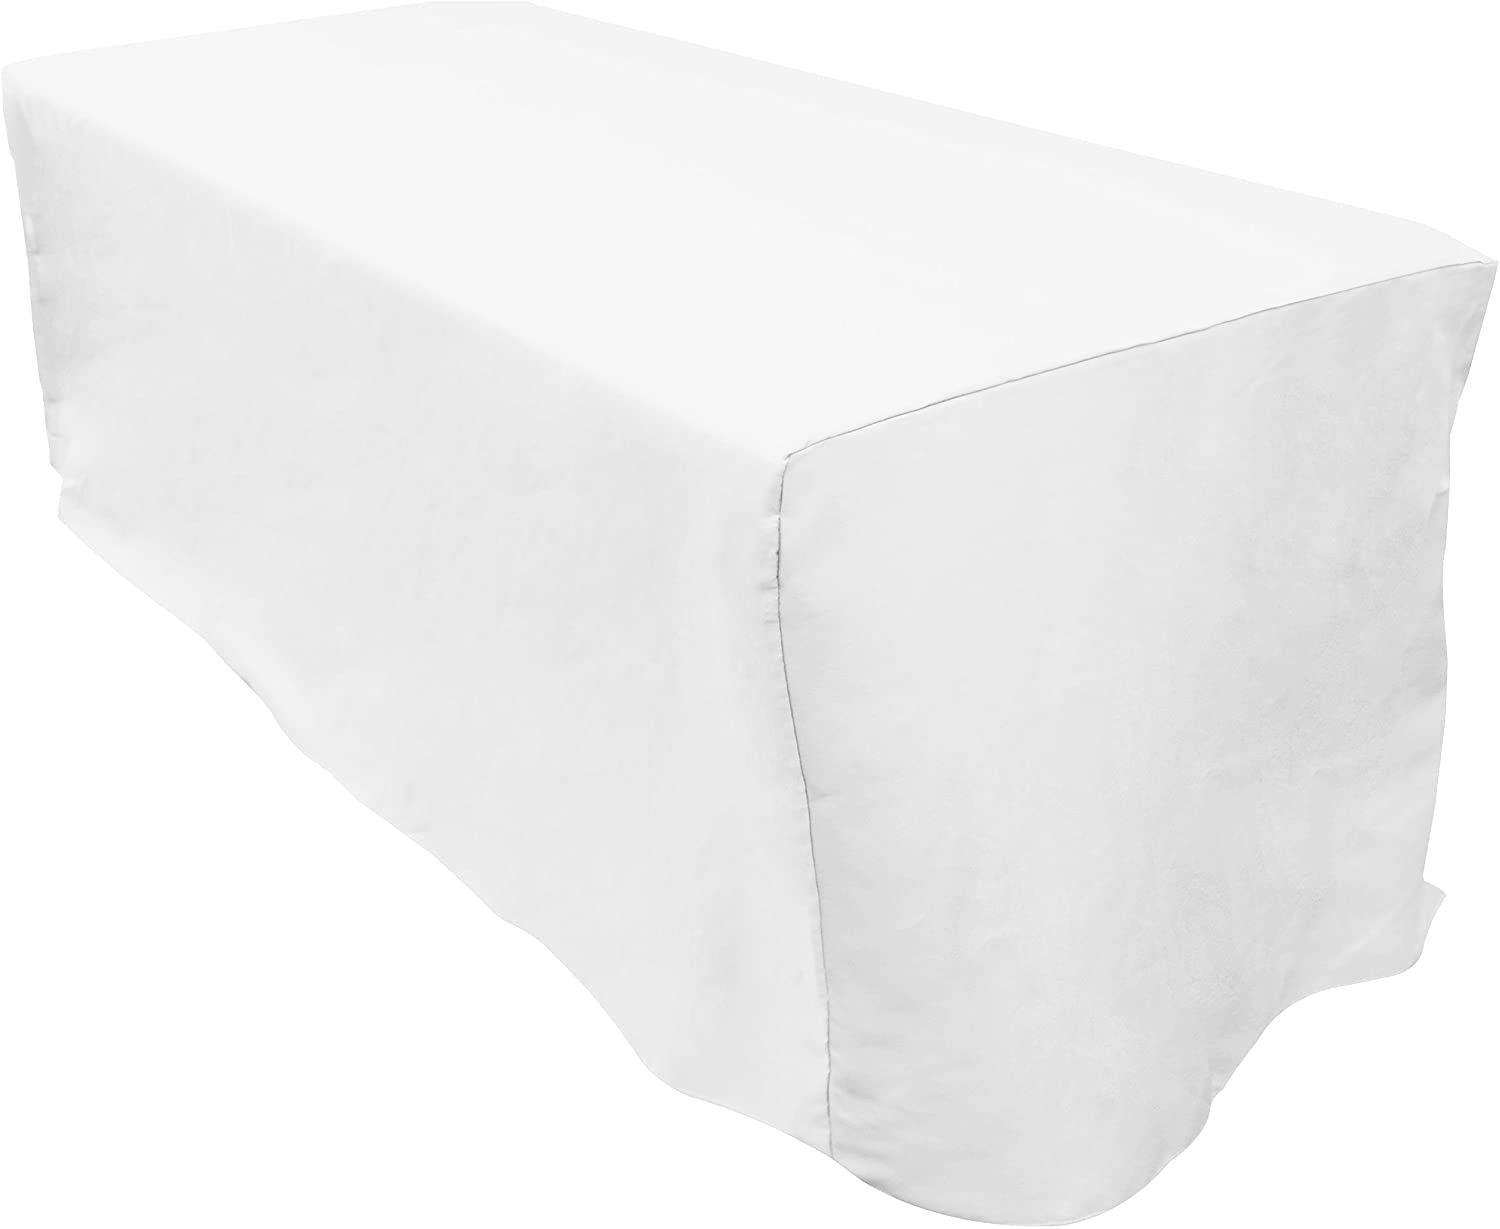 Zoyer 6 ft. Fitted Tablecloth - 6 Feet Rectangular Polyester Tablecloth 30 x 72 Inch Table Cover - White